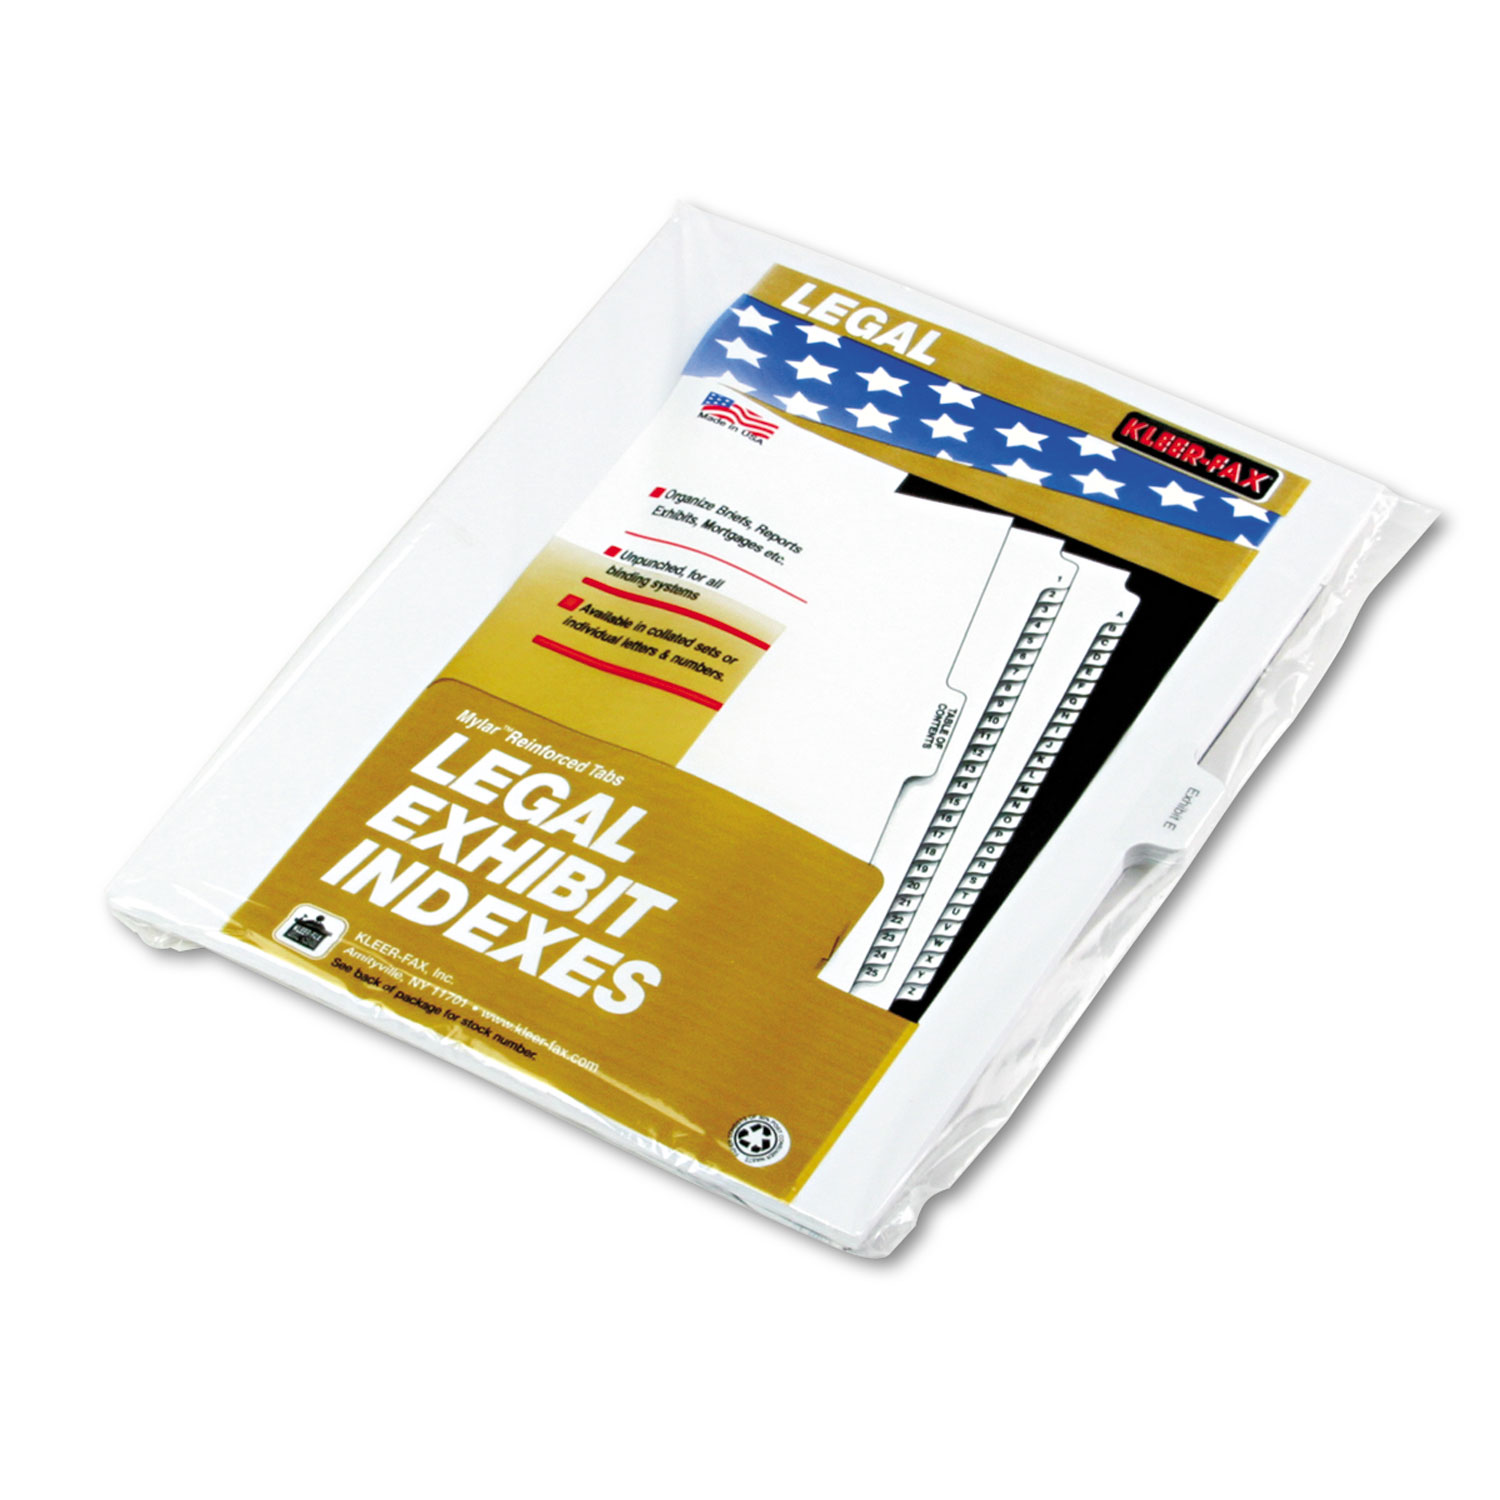 """90000 Series Legal Exhibit Index Dividers, 1 10 Cut Tab, """"Exhibit E\ by Kleer-Fax"""